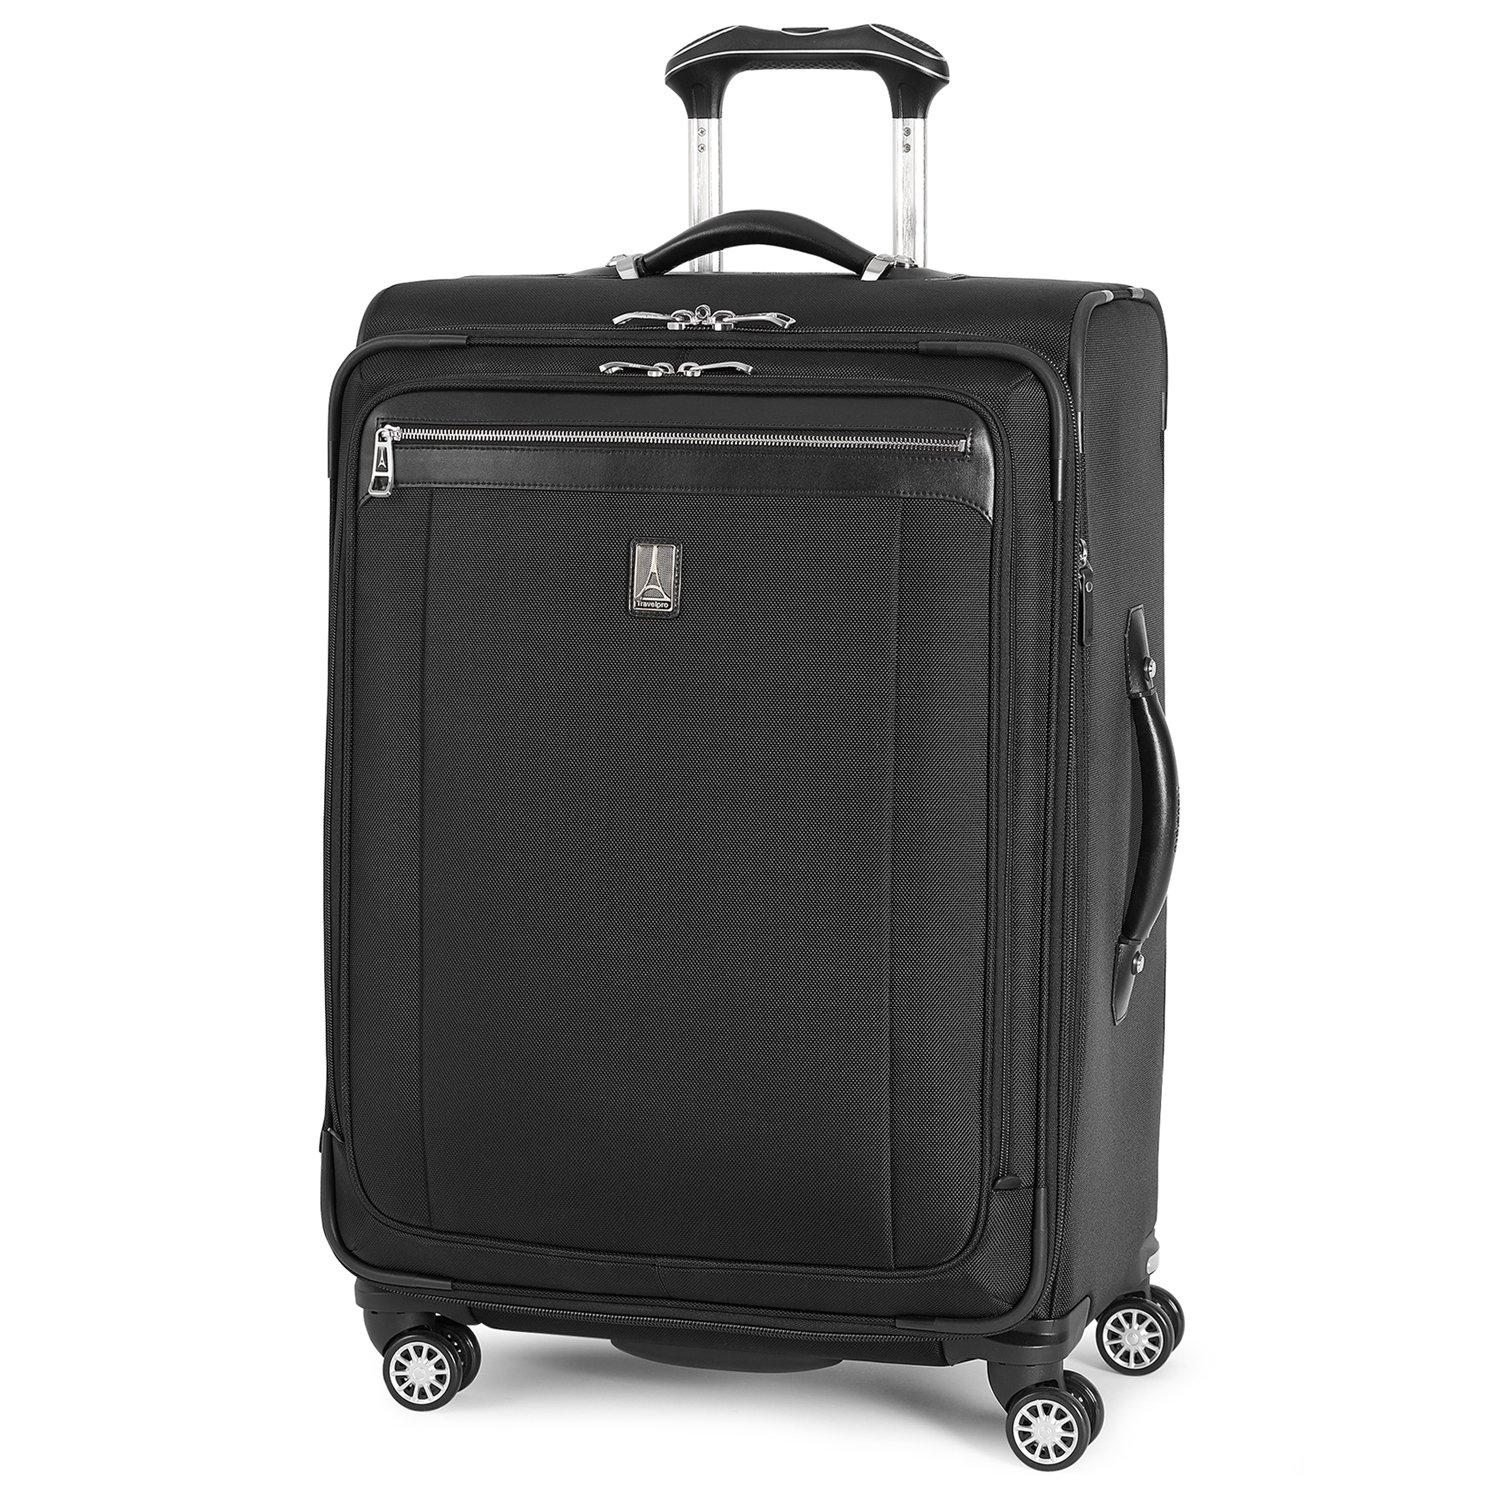 Travelpro PlatinumMagna2 Expandable Spinner Suiter Suitcase, 25-in., Black